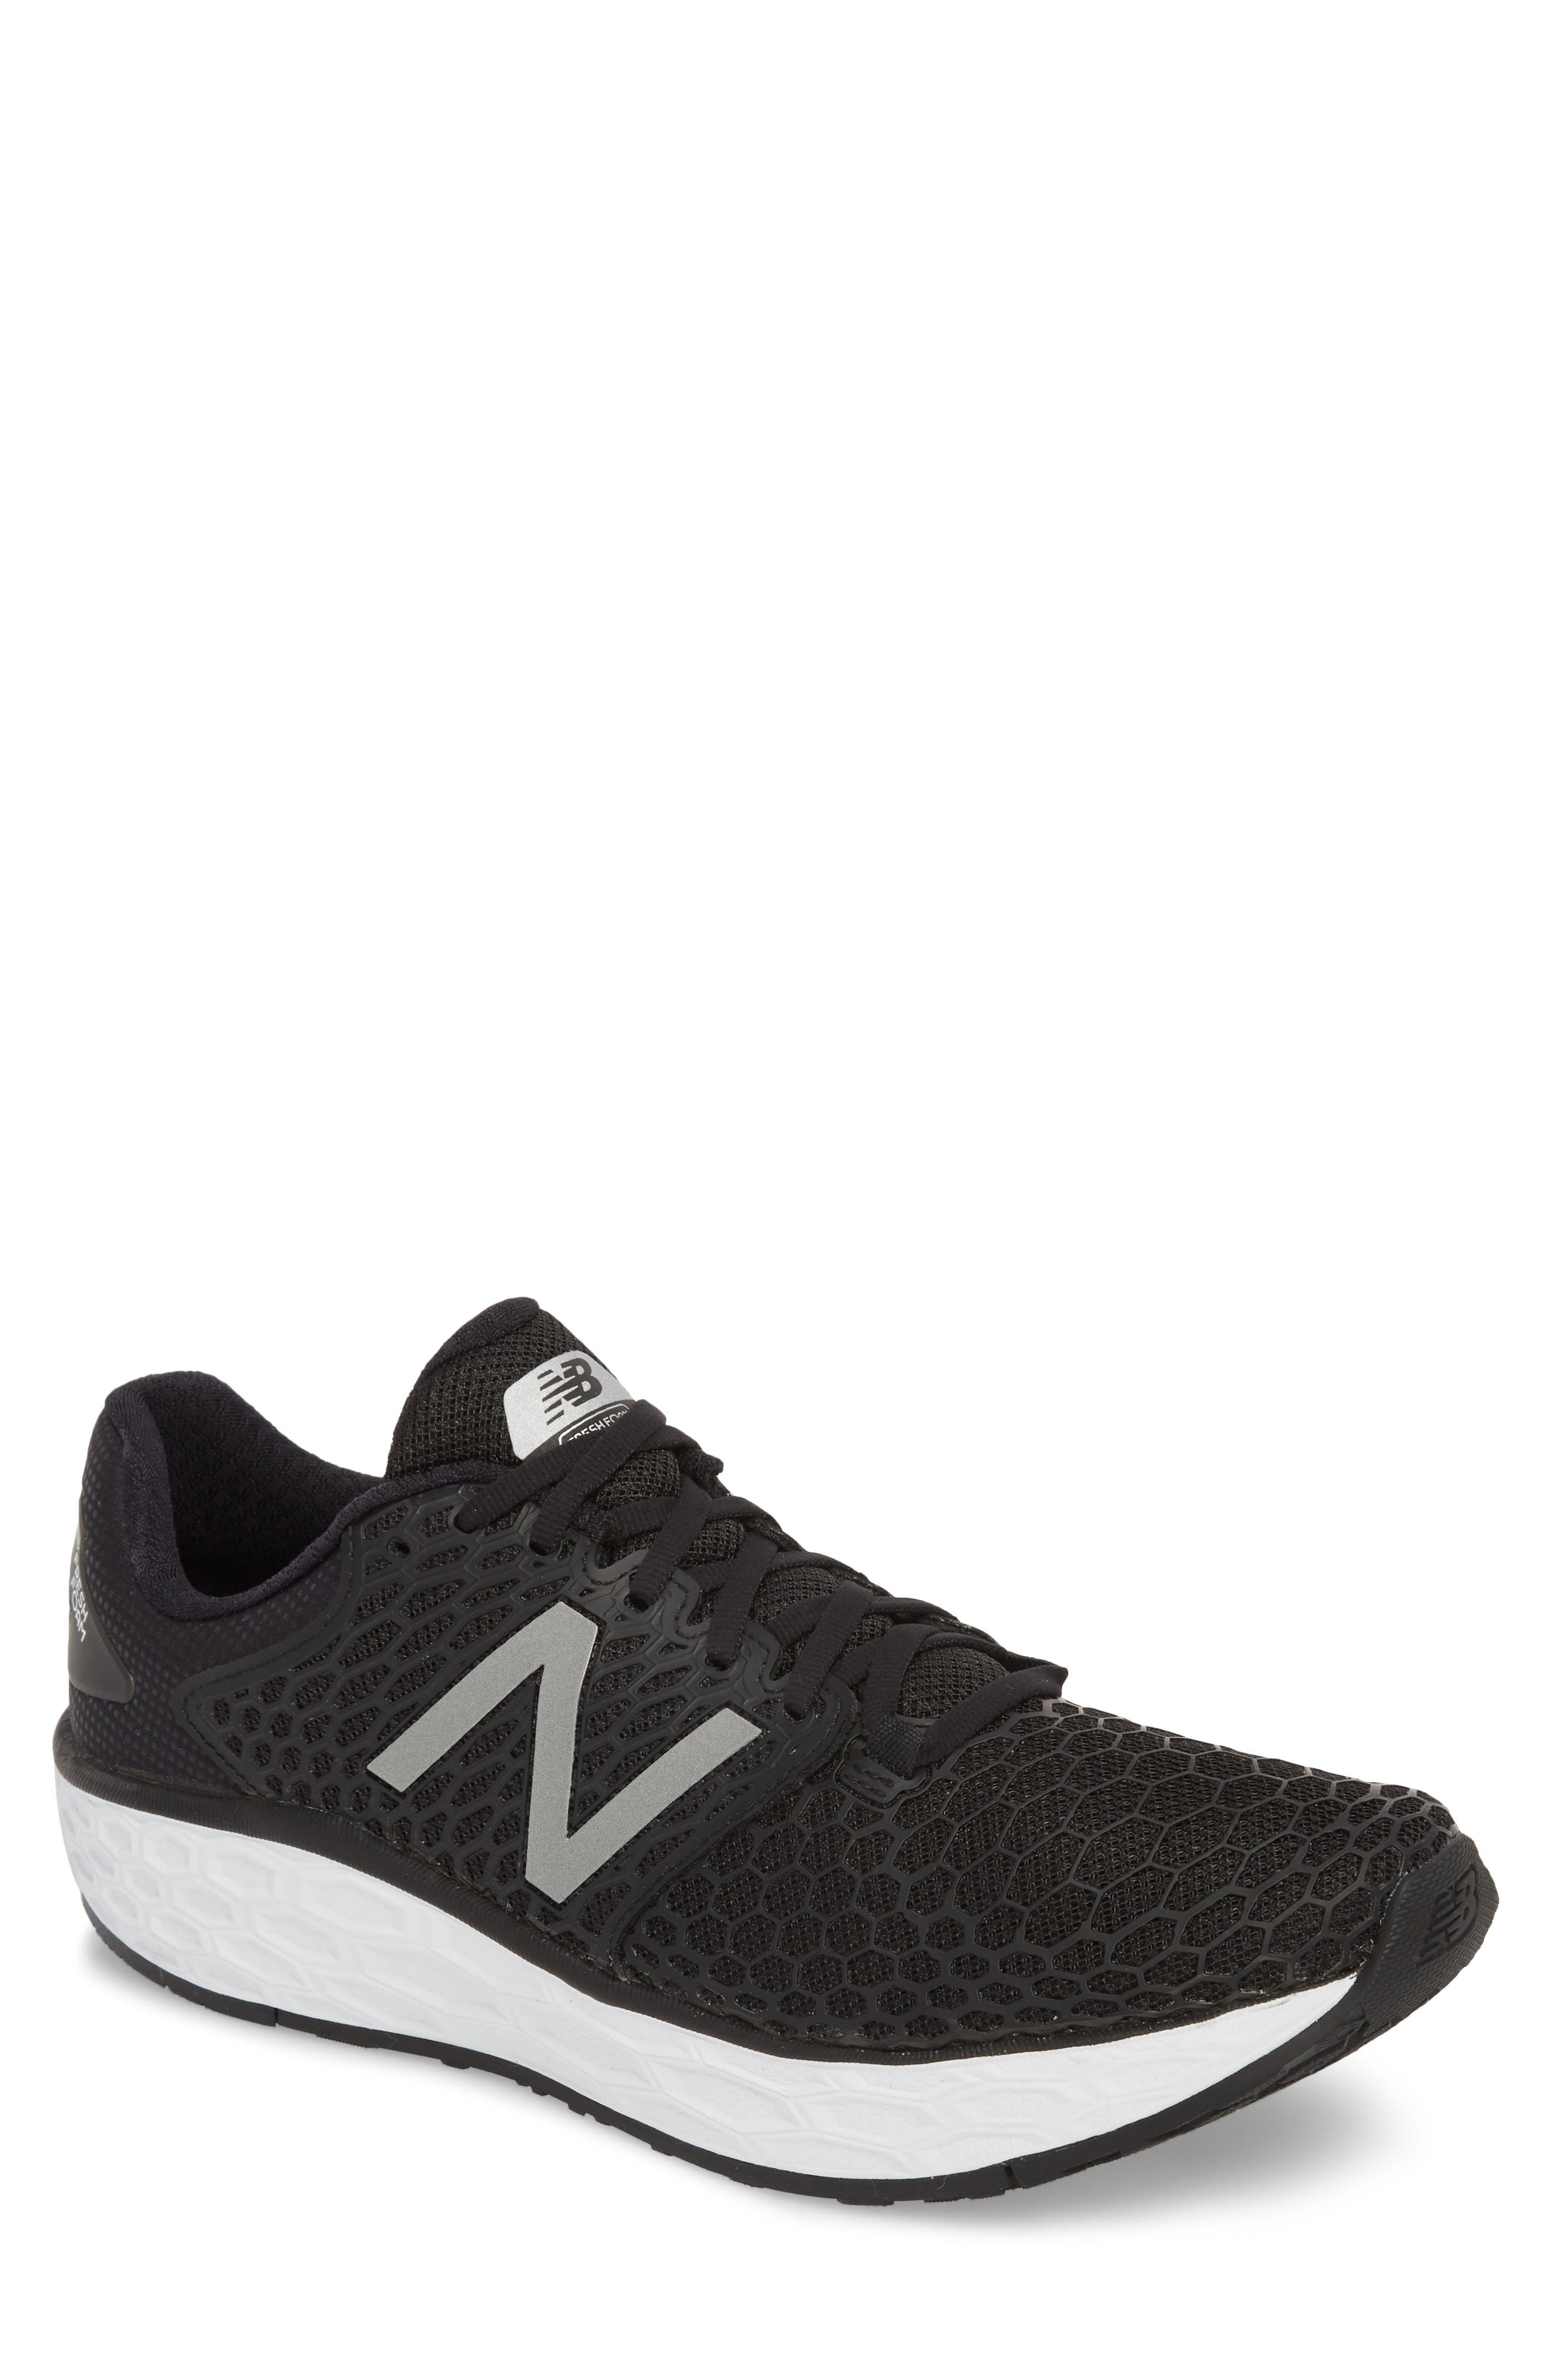 NEW BALANCE, Fresh Foam Vongo v3 Running Shoe, Main thumbnail 1, color, BLACK